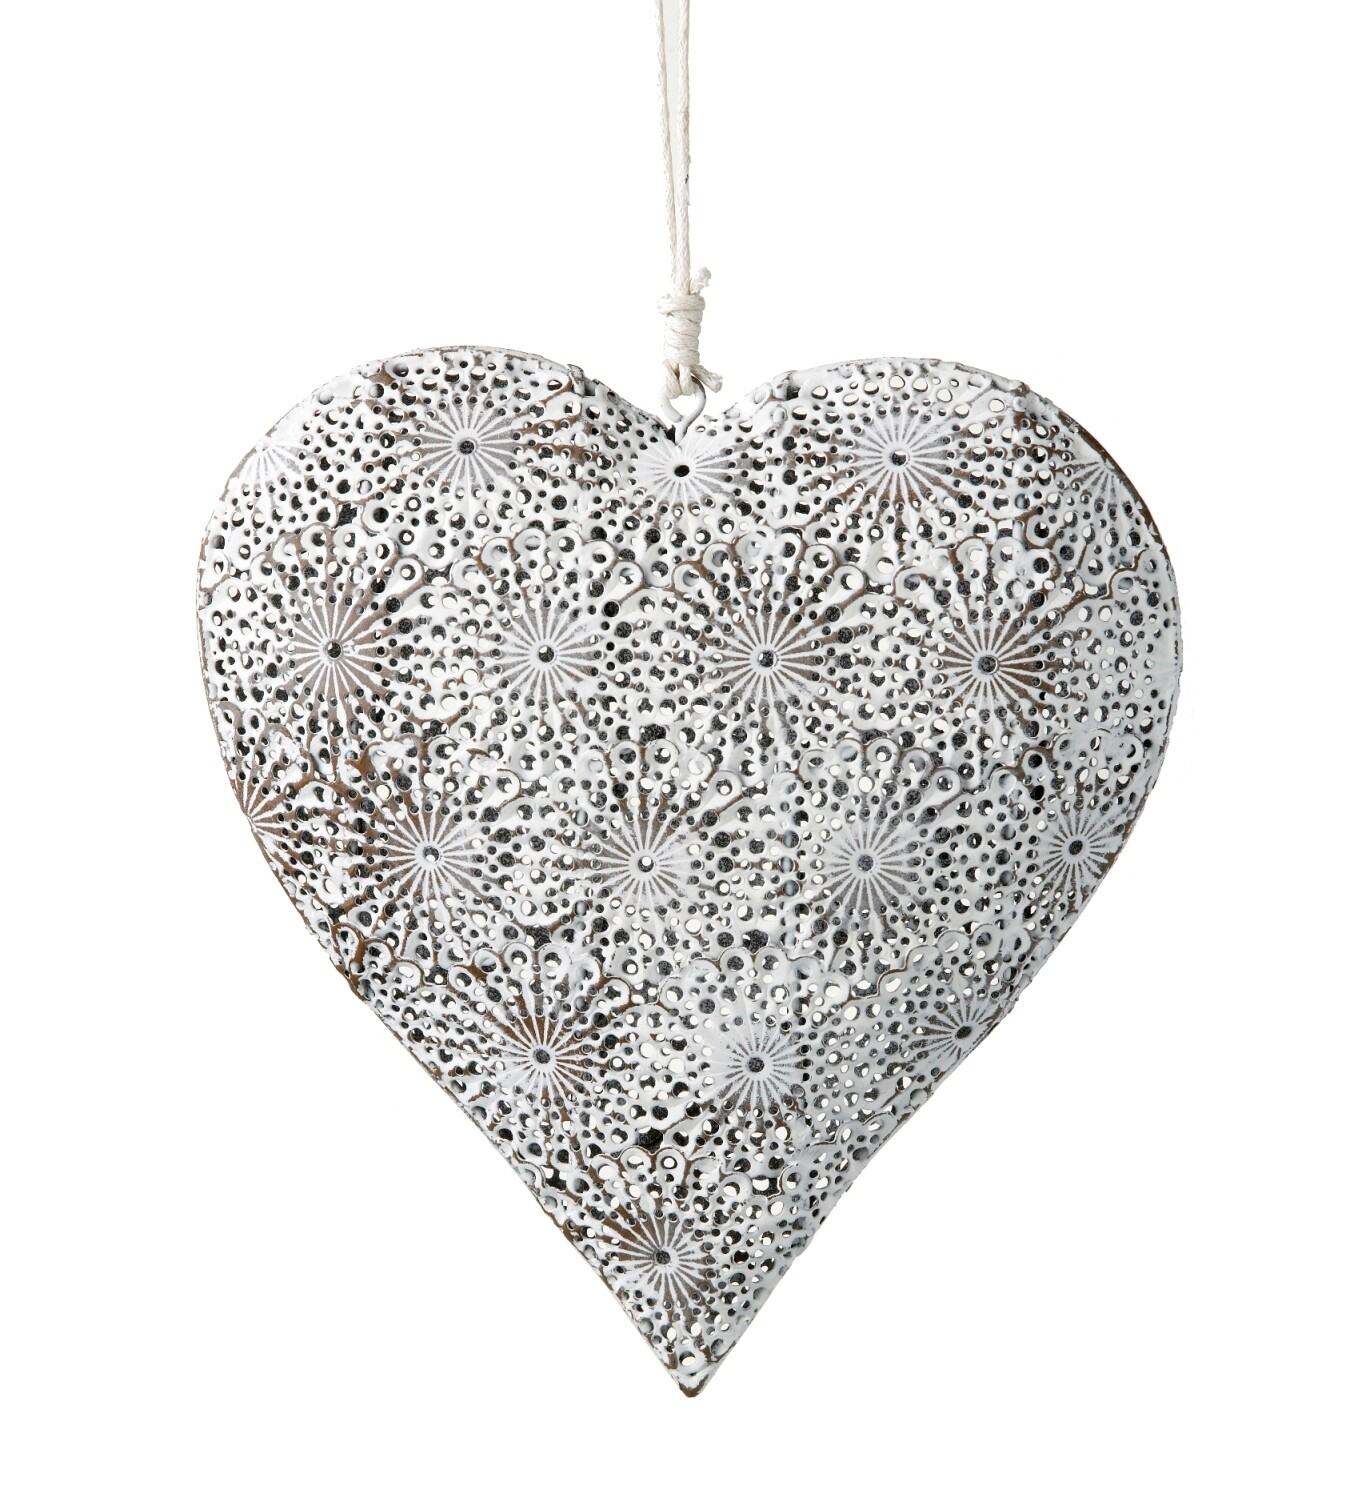 Hanging Heart Cream Lace